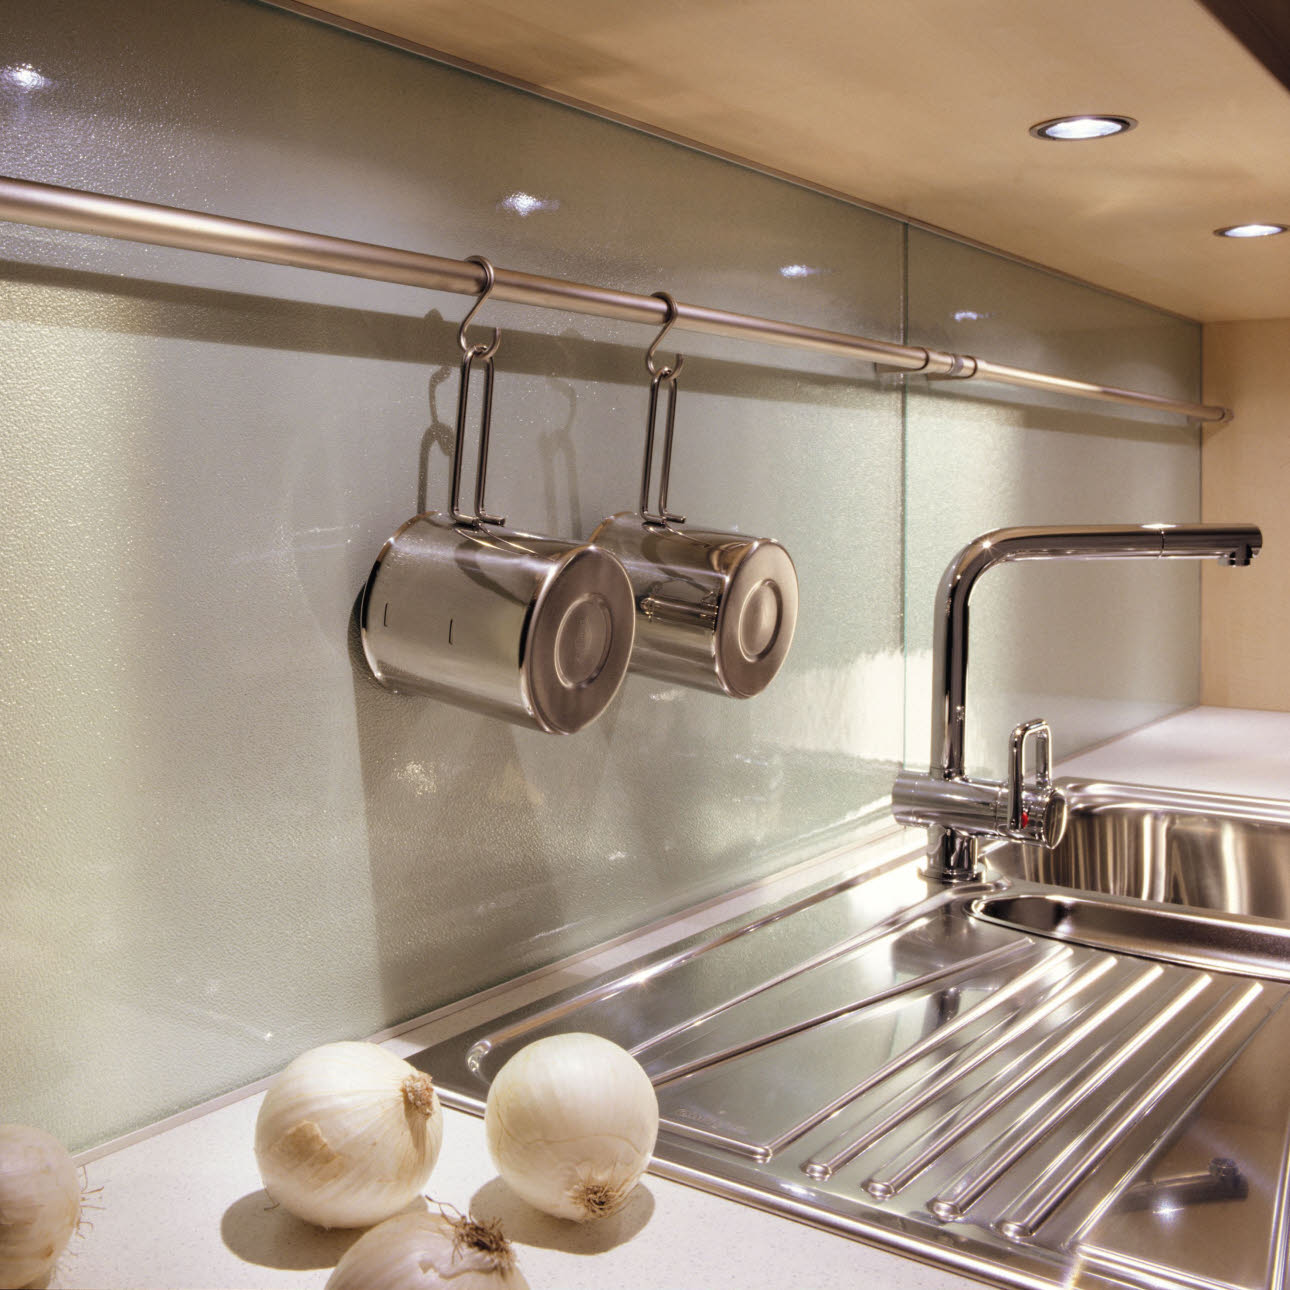 Flush-mounted sinks attached from above